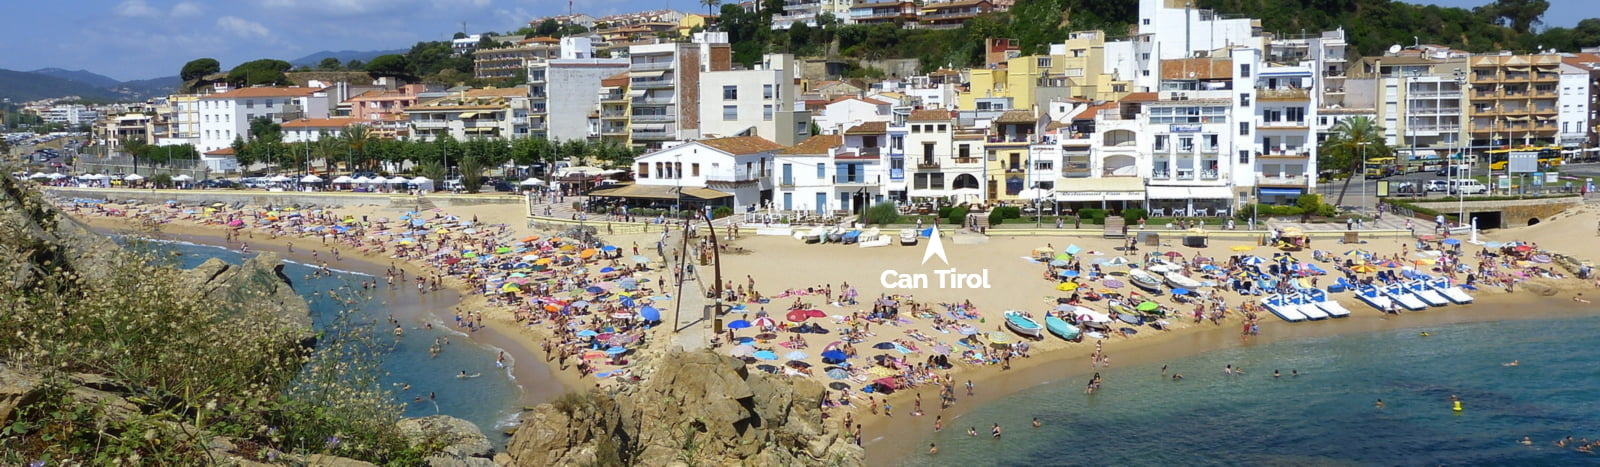 Location of Cocktail Bar Can Tirol in Blanes